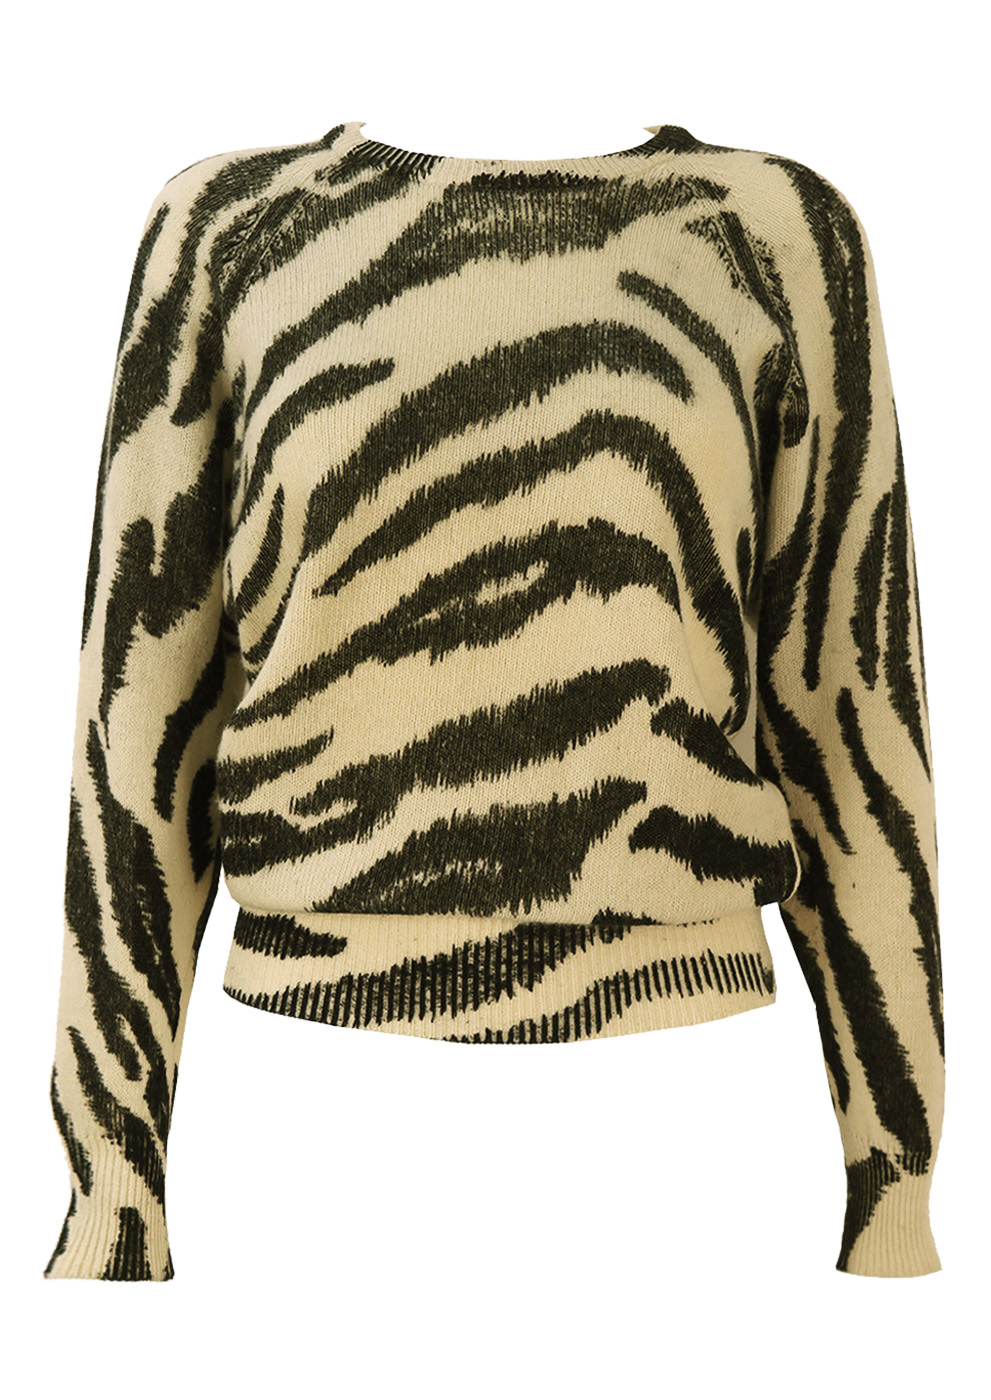 full range of specifications how to buy diversified latest designs Black and White Zebra Print Jumper - S/M